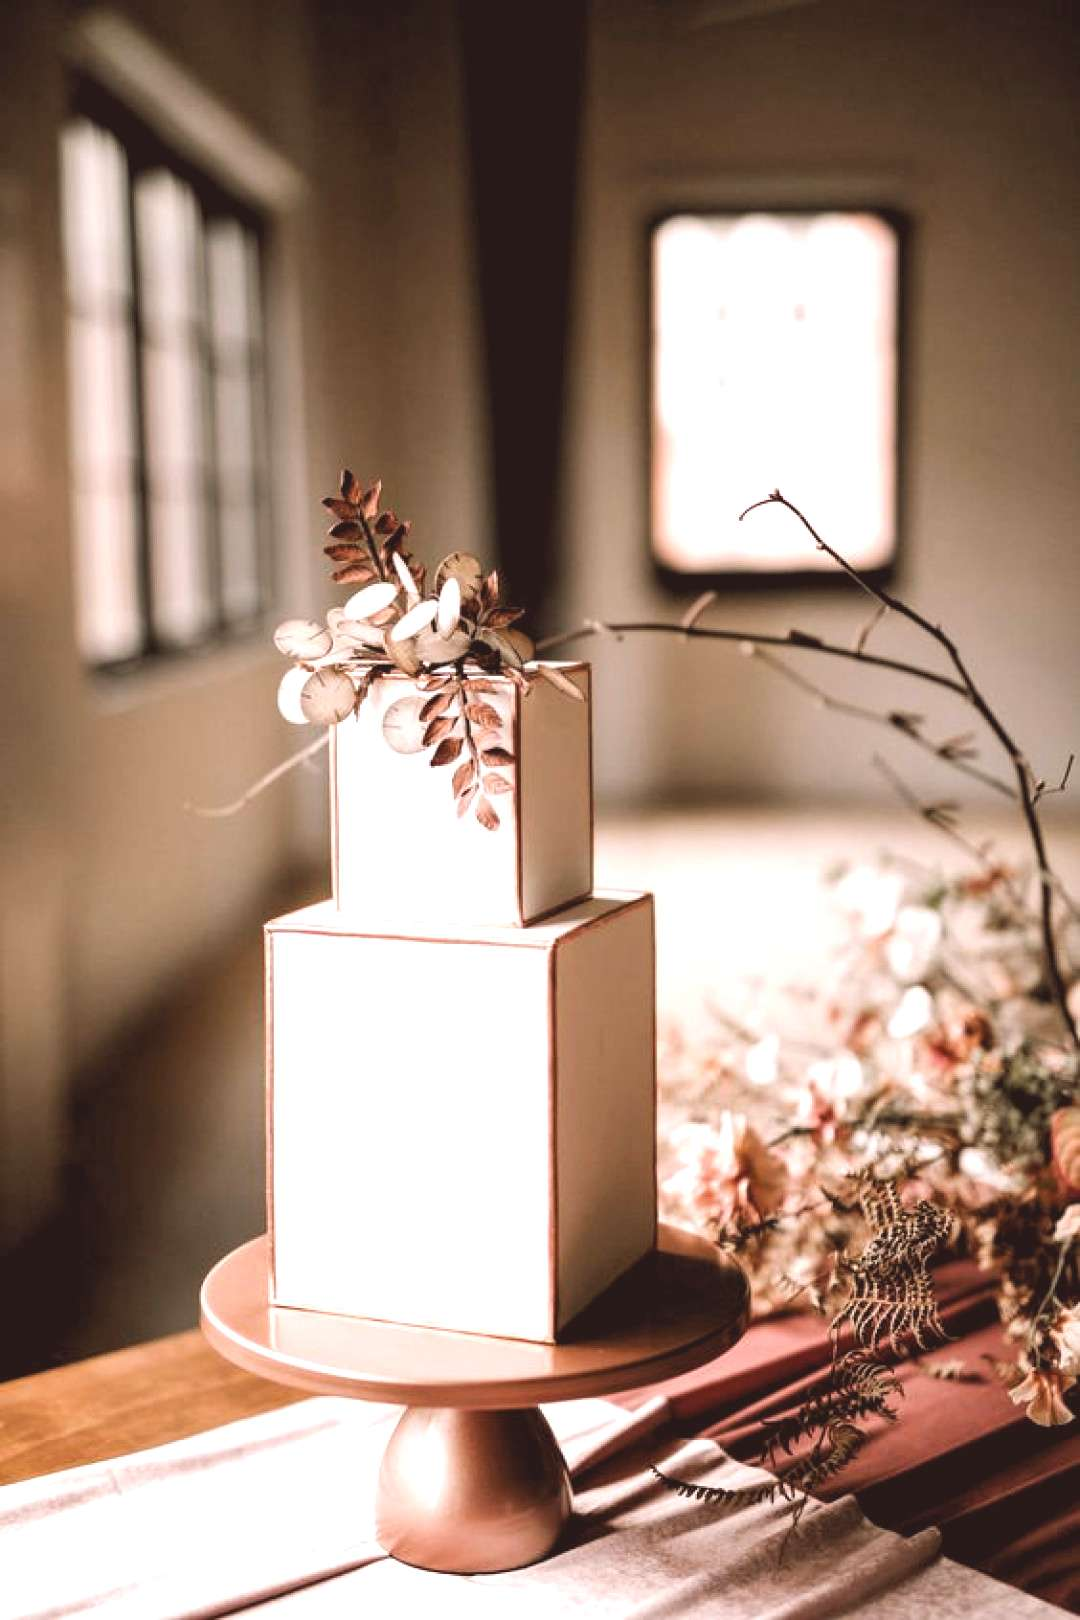 Here are 20 unique wedding cakes that you wouldnt normally see - From macaroon t... -